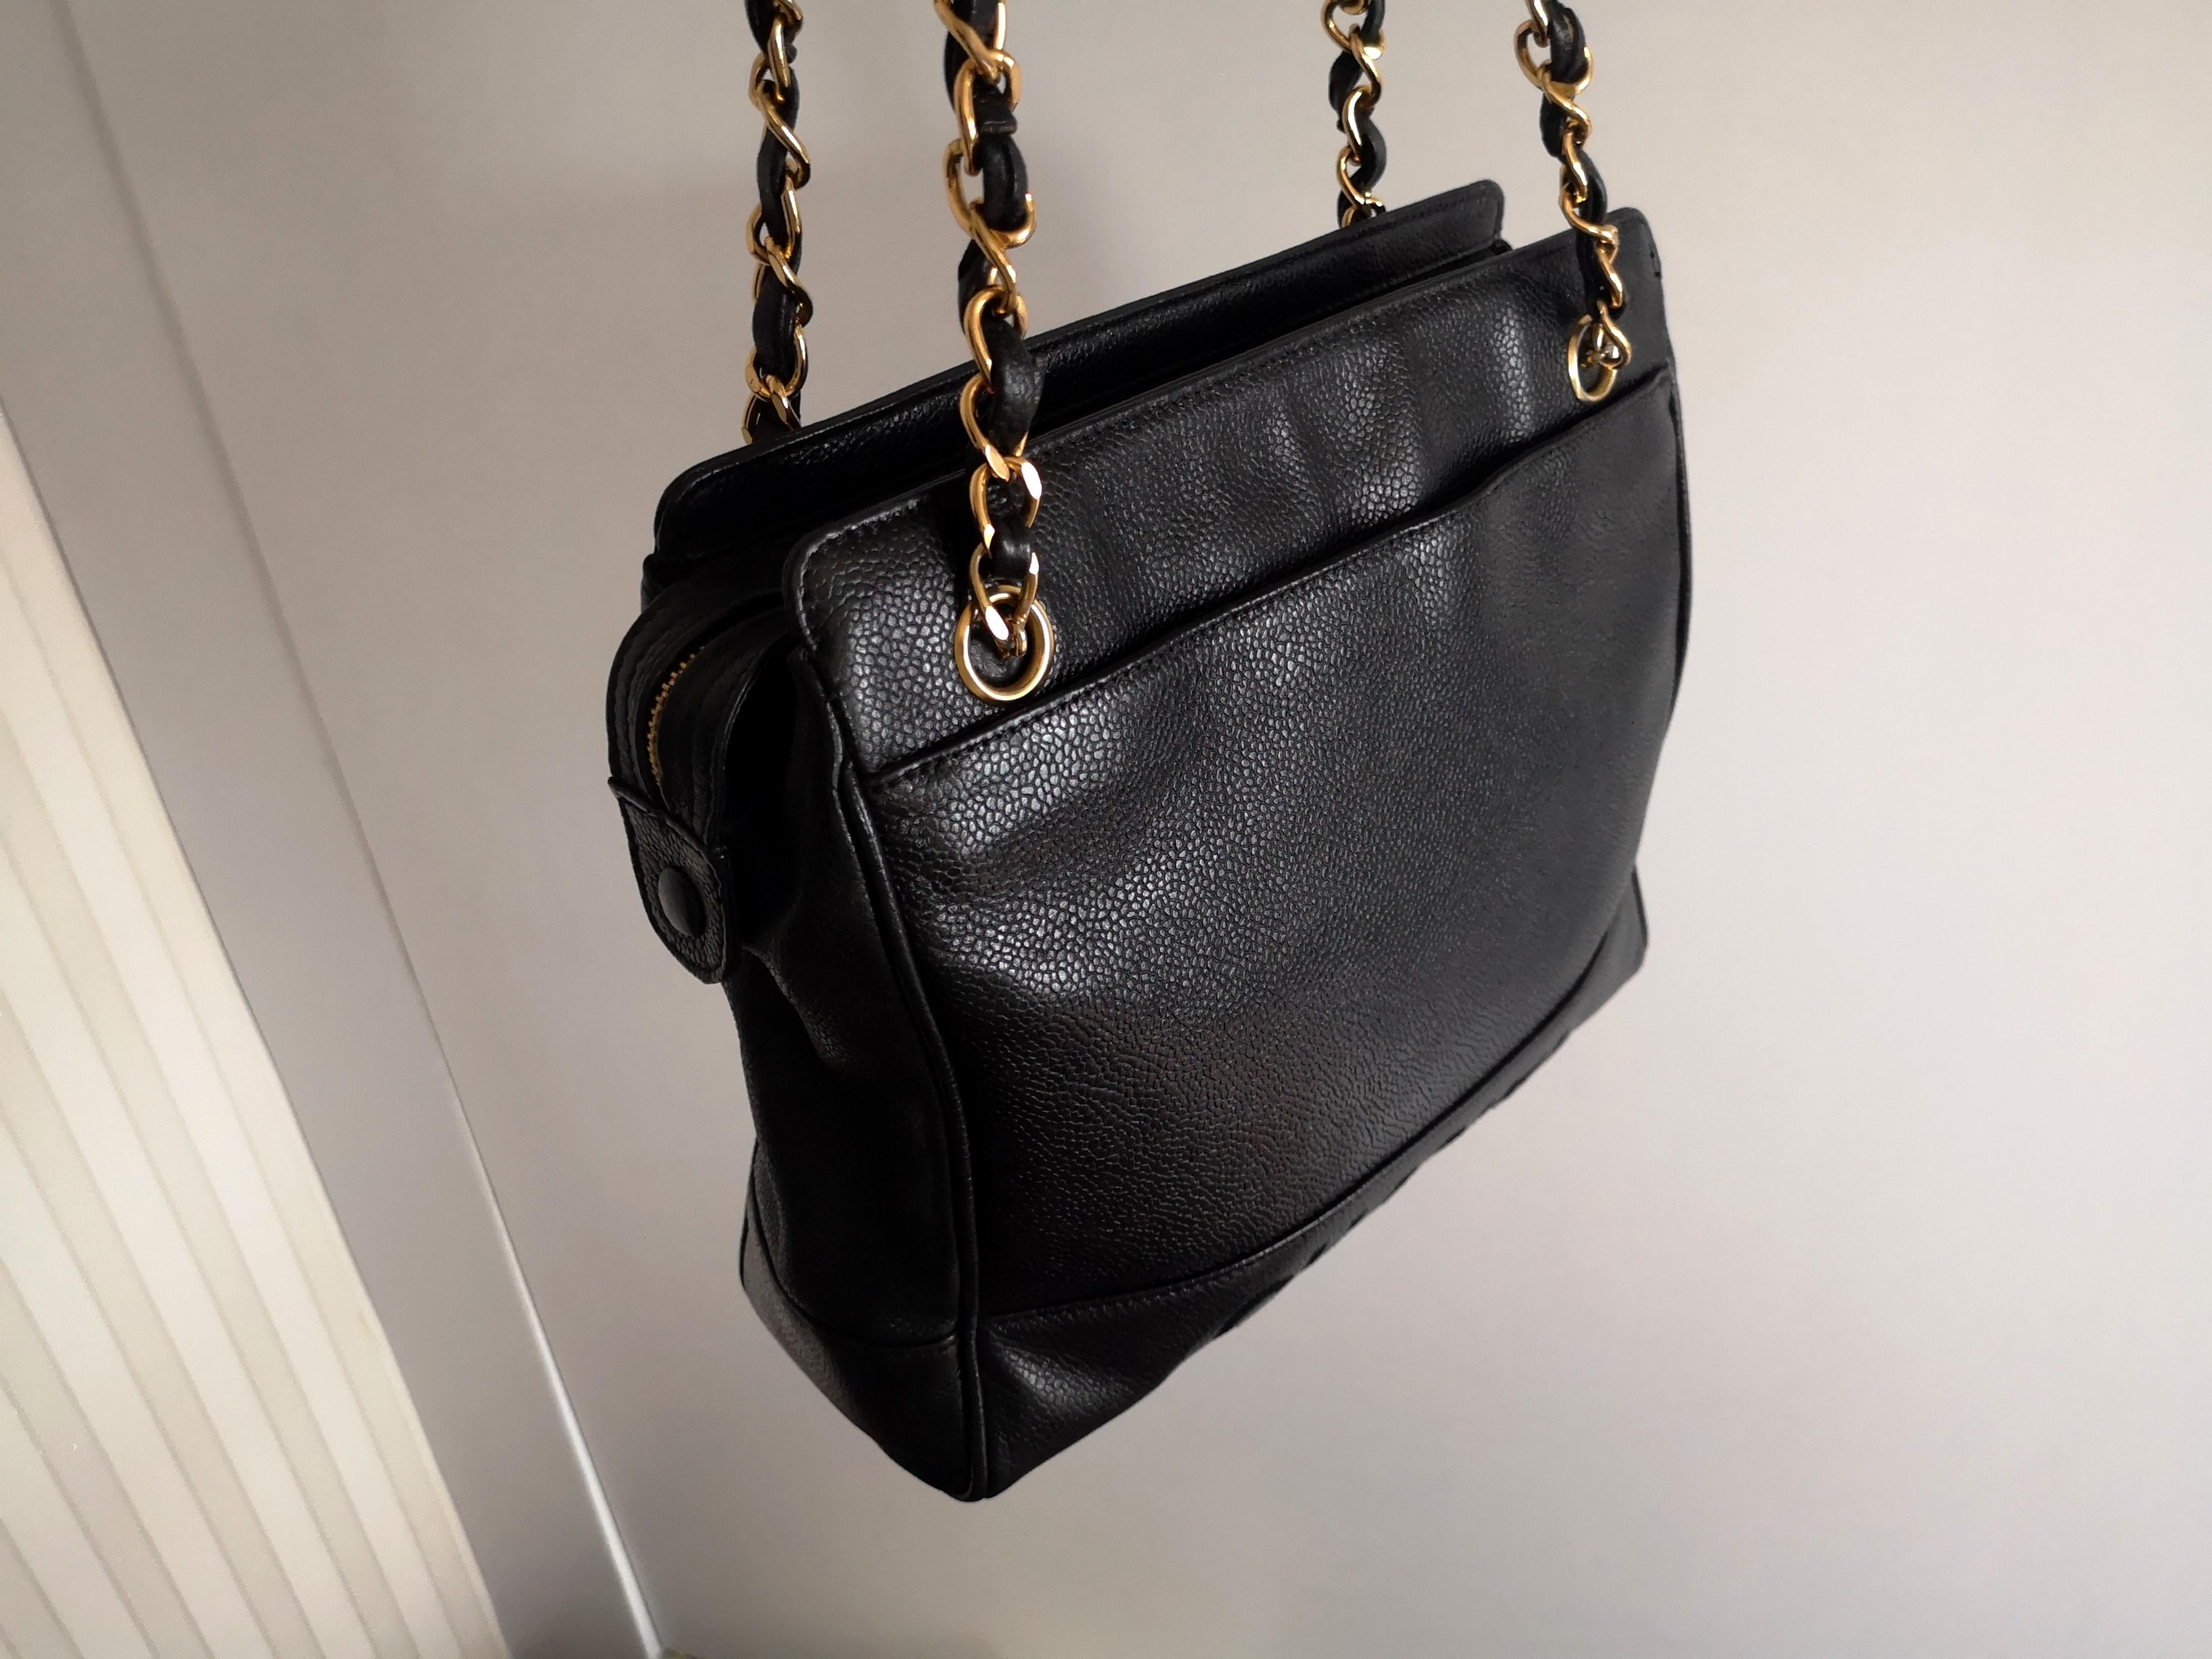 Fast deal $999! Authentic Chanel Tote